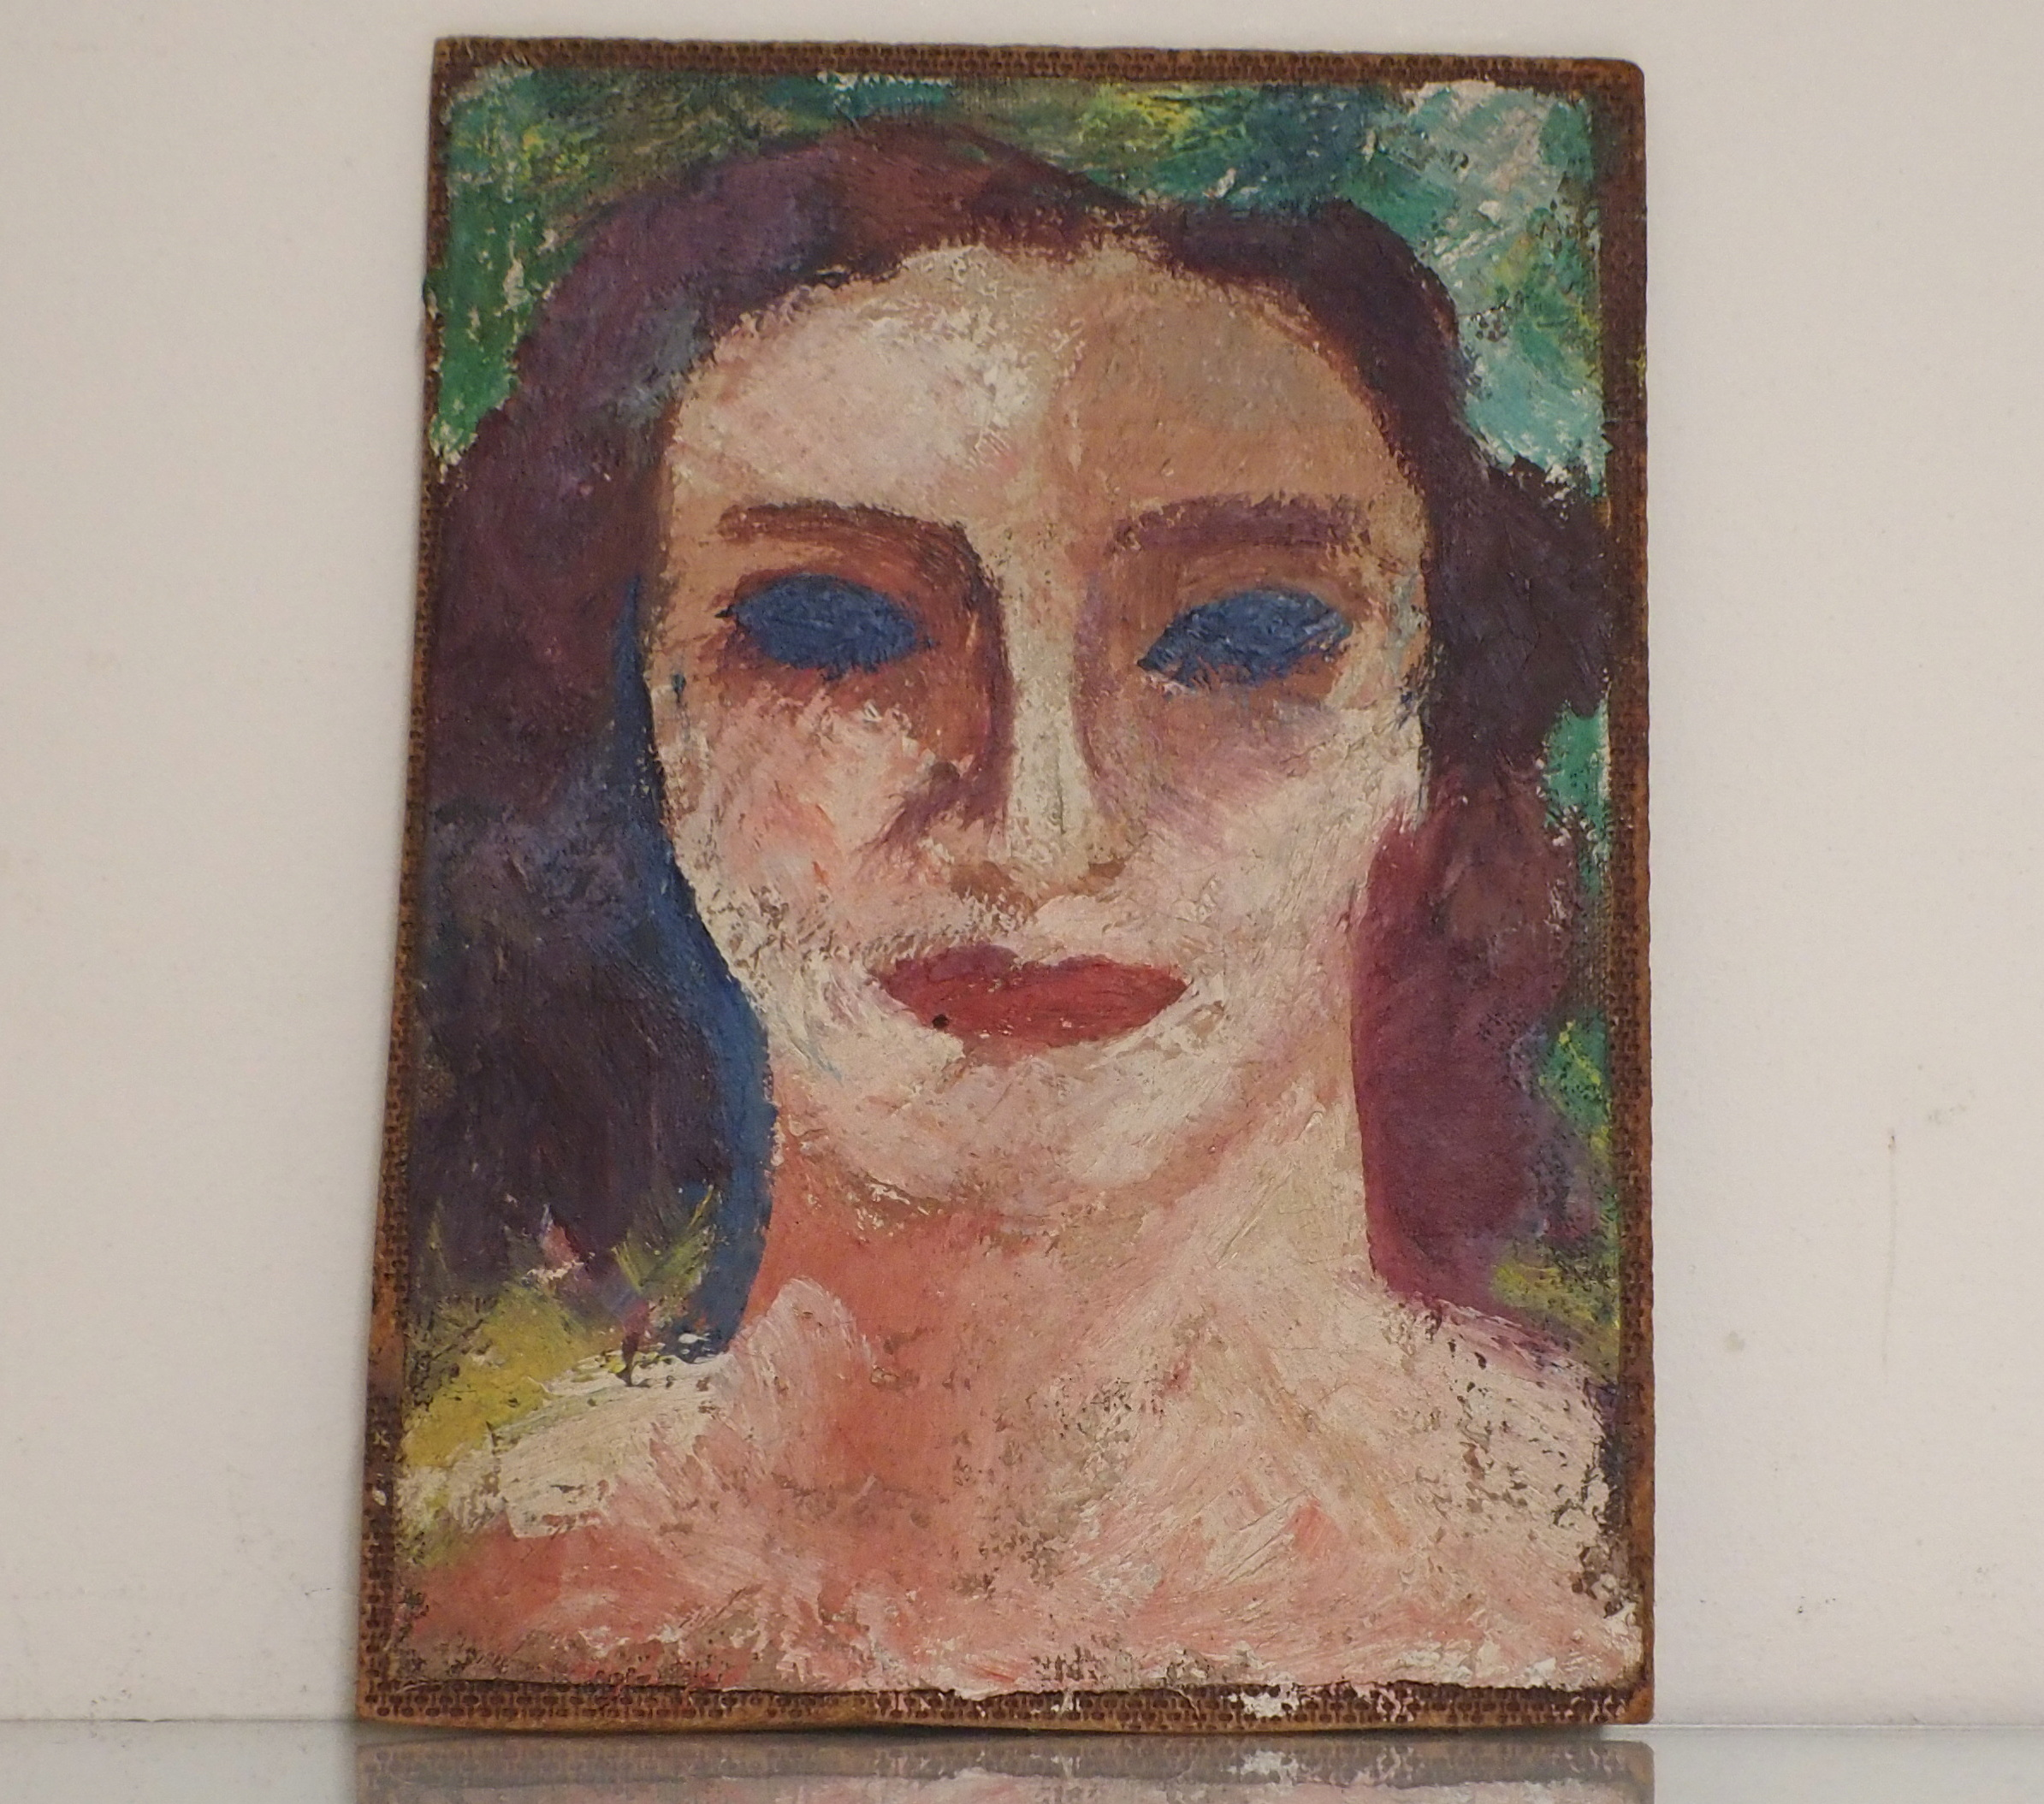 •DONALD BAIN (SCOTTISH 1904-1979) HEAD STUDY oil on canvas laid on panel board, 19.5 x 14cm signed - Image 2 of 5